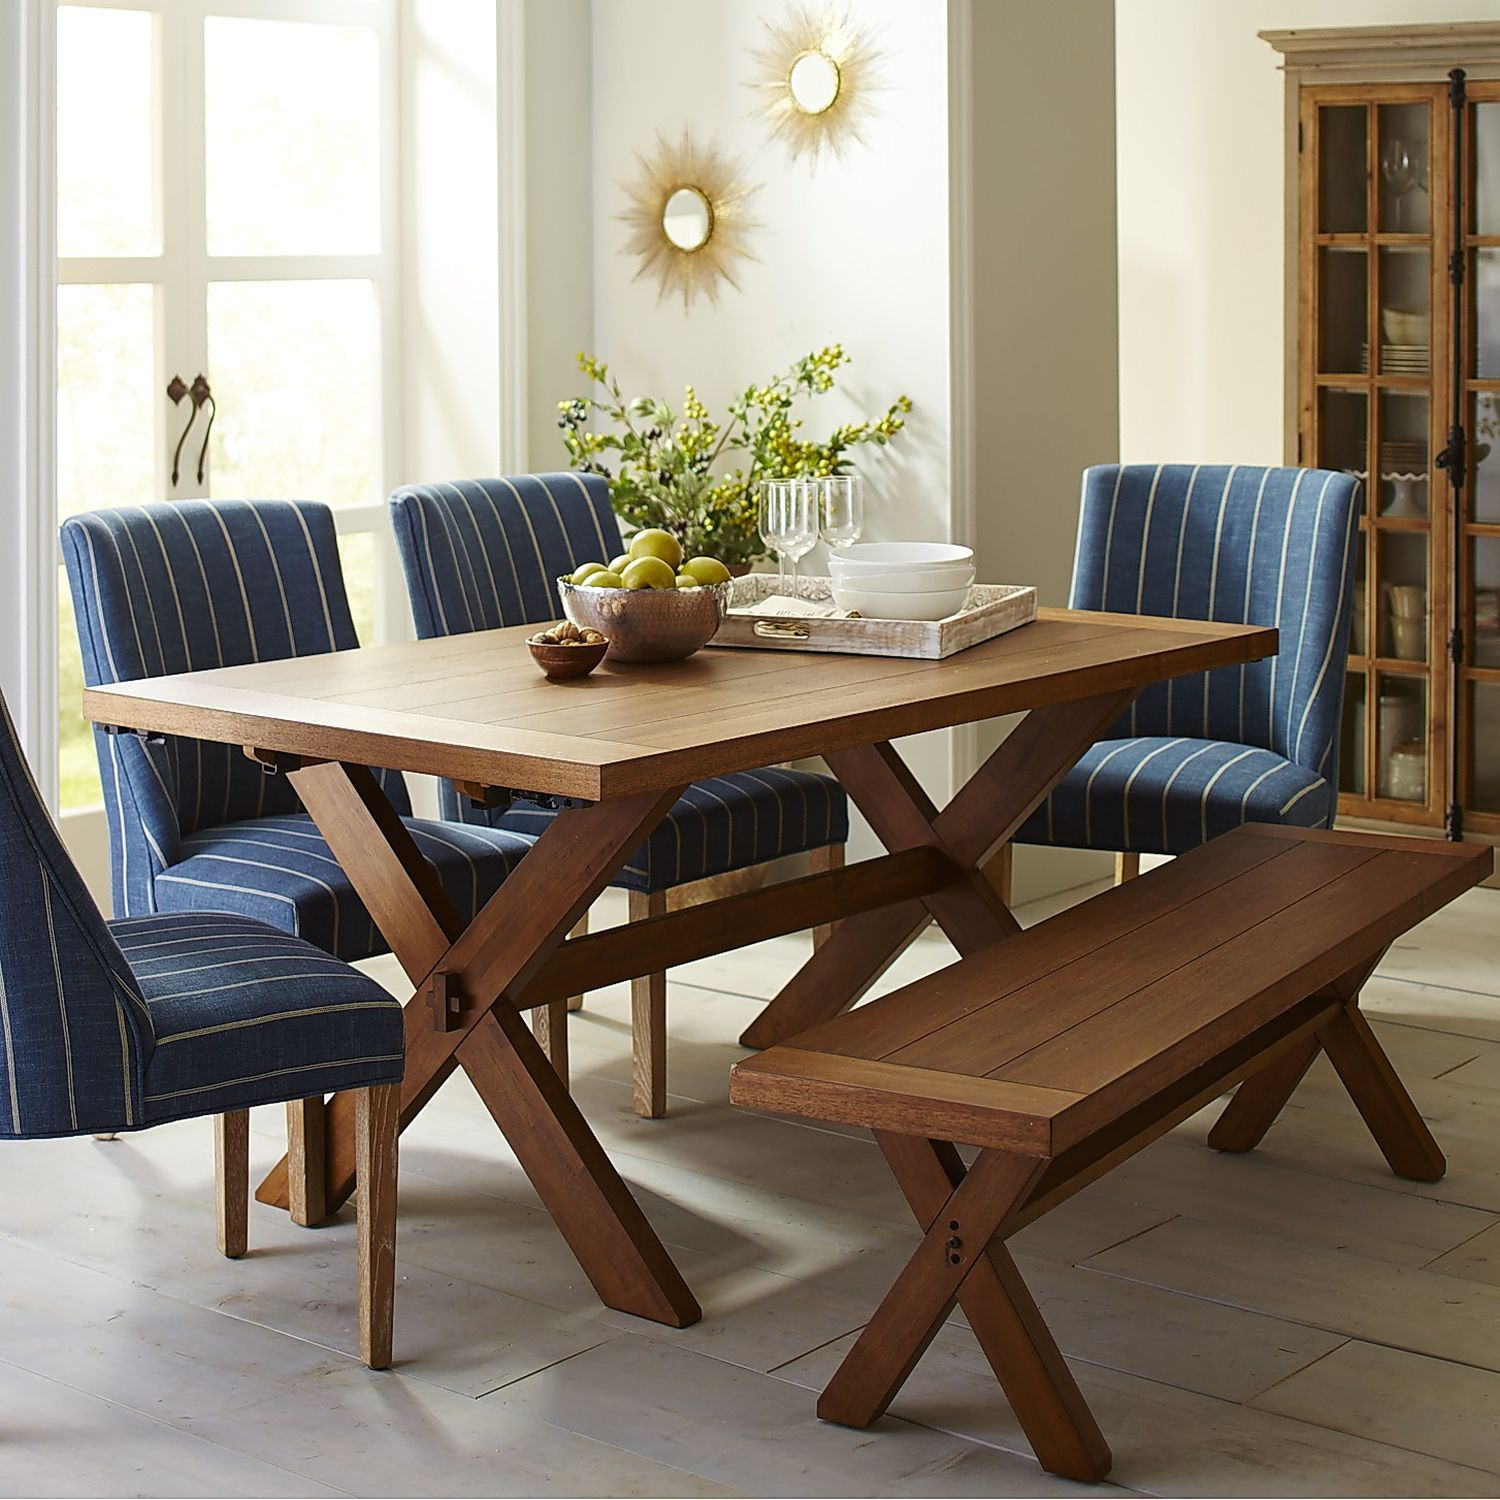 Extension Dining Room Tables: Nolan Extension Java Trestle Table